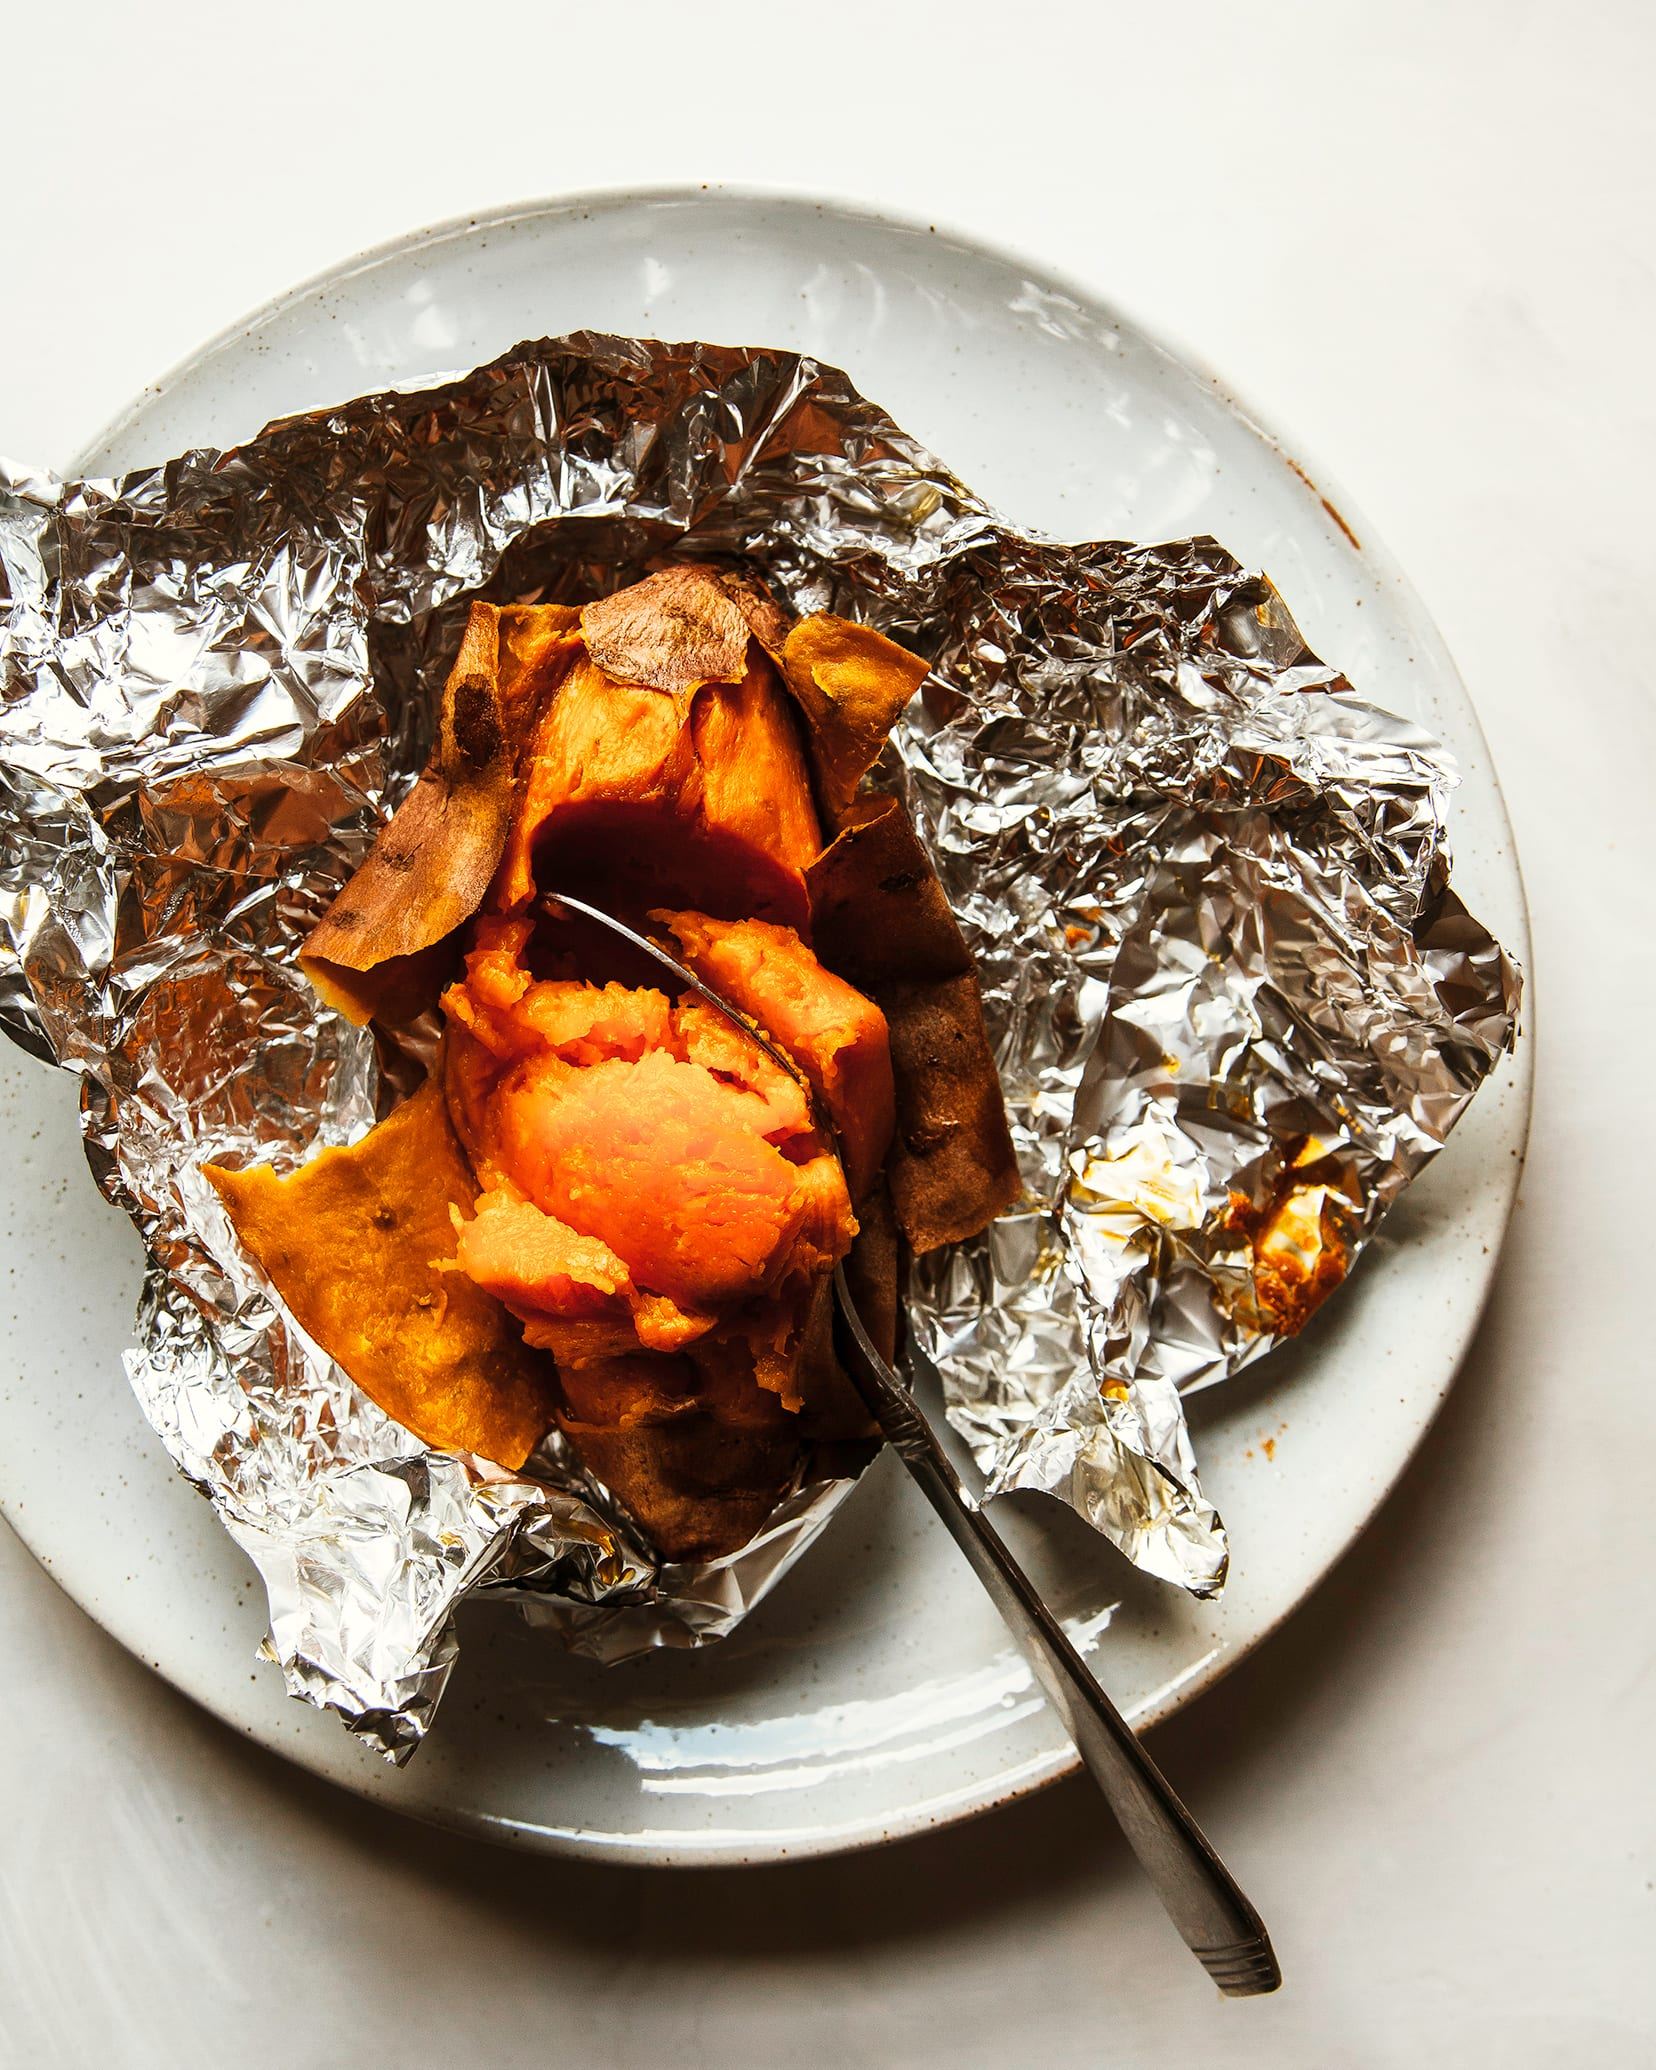 Overhead shot of a baked and opened sweet potato in torn open foil packet on top of a white plate.